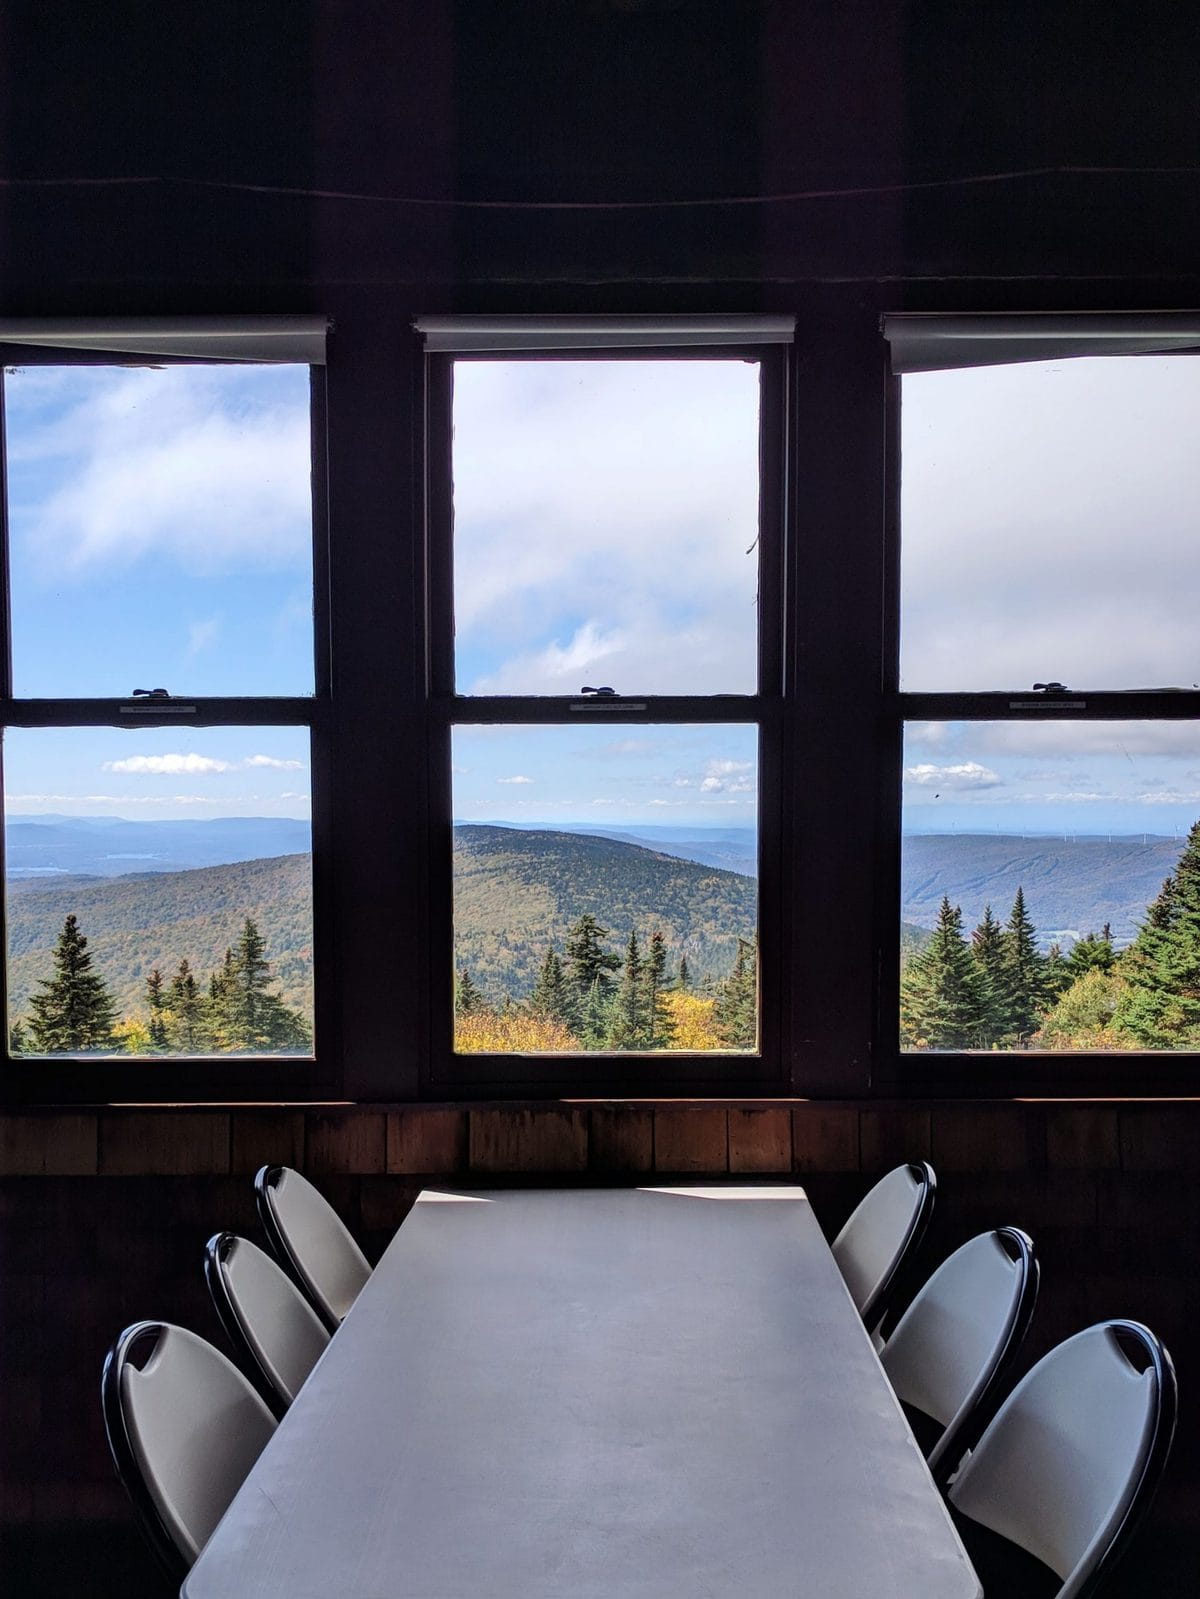 Bascom Lodge Mt Greylock - view from the windows